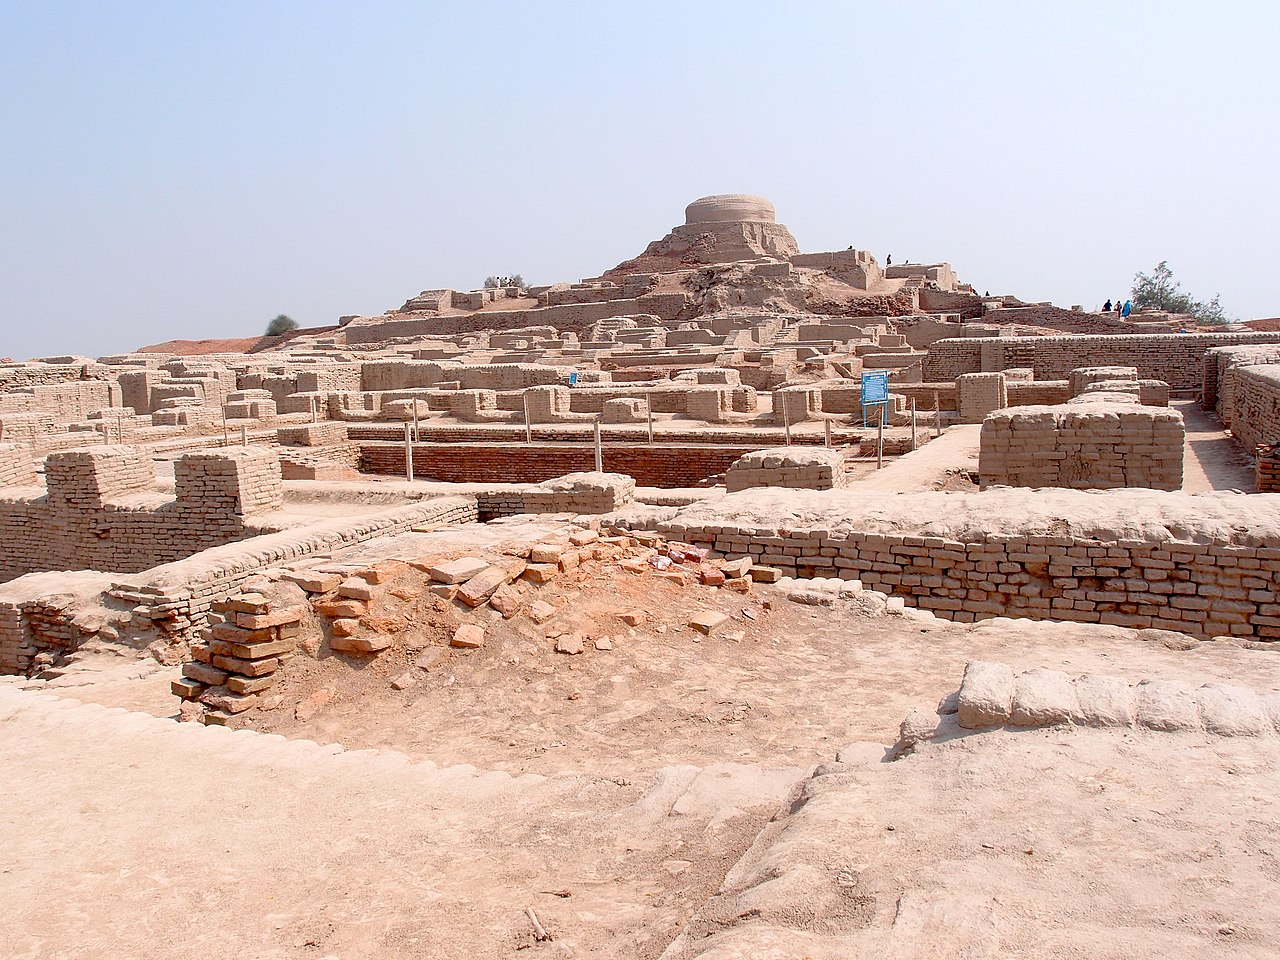 1280px-Mohenjodaro_-_view_of_the_stupa_mound.JPG